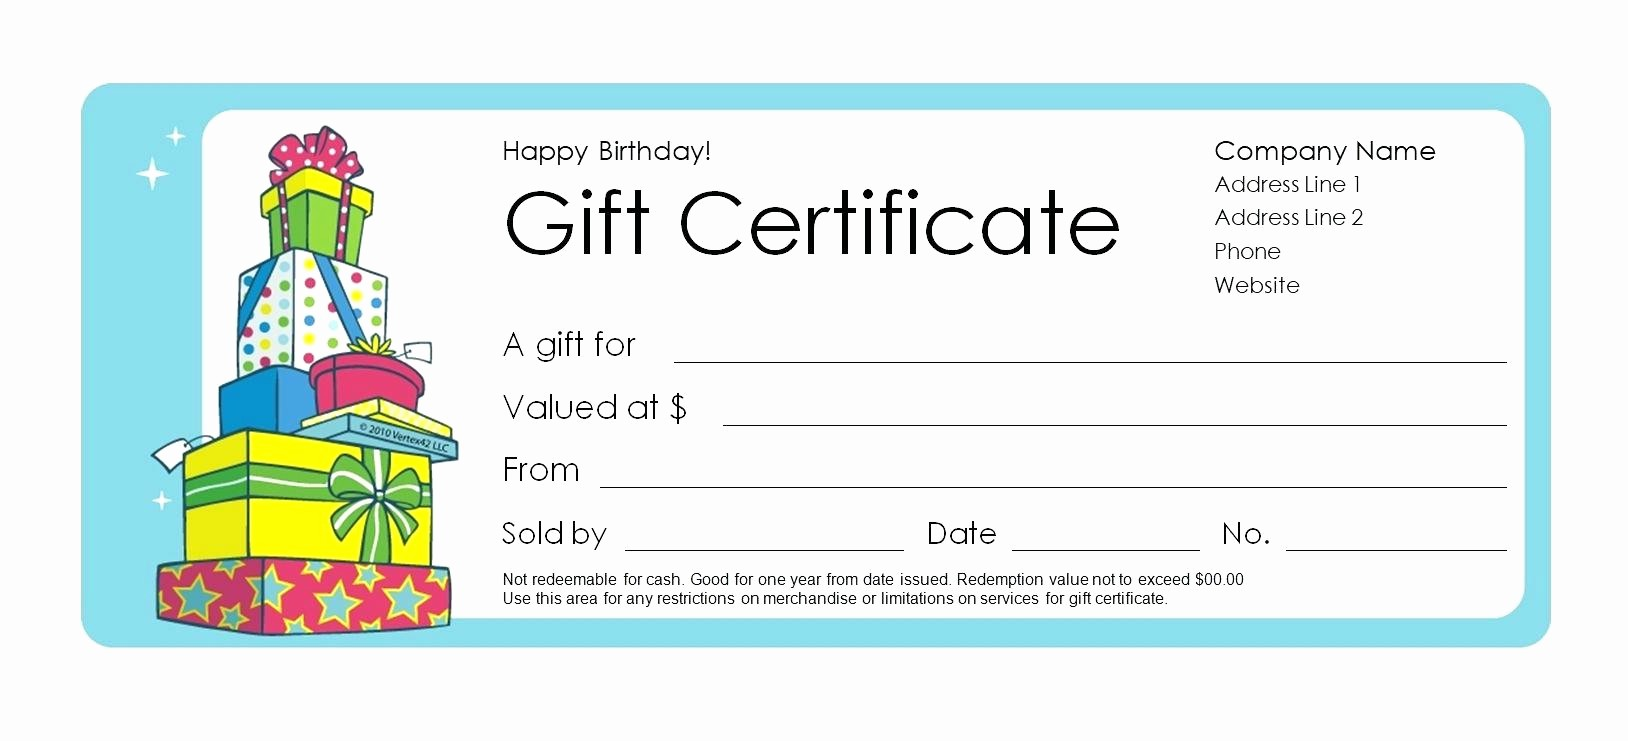 Free Holiday Gift Certificate Template Elegant Template Microsoft Word Gift Certificate Template